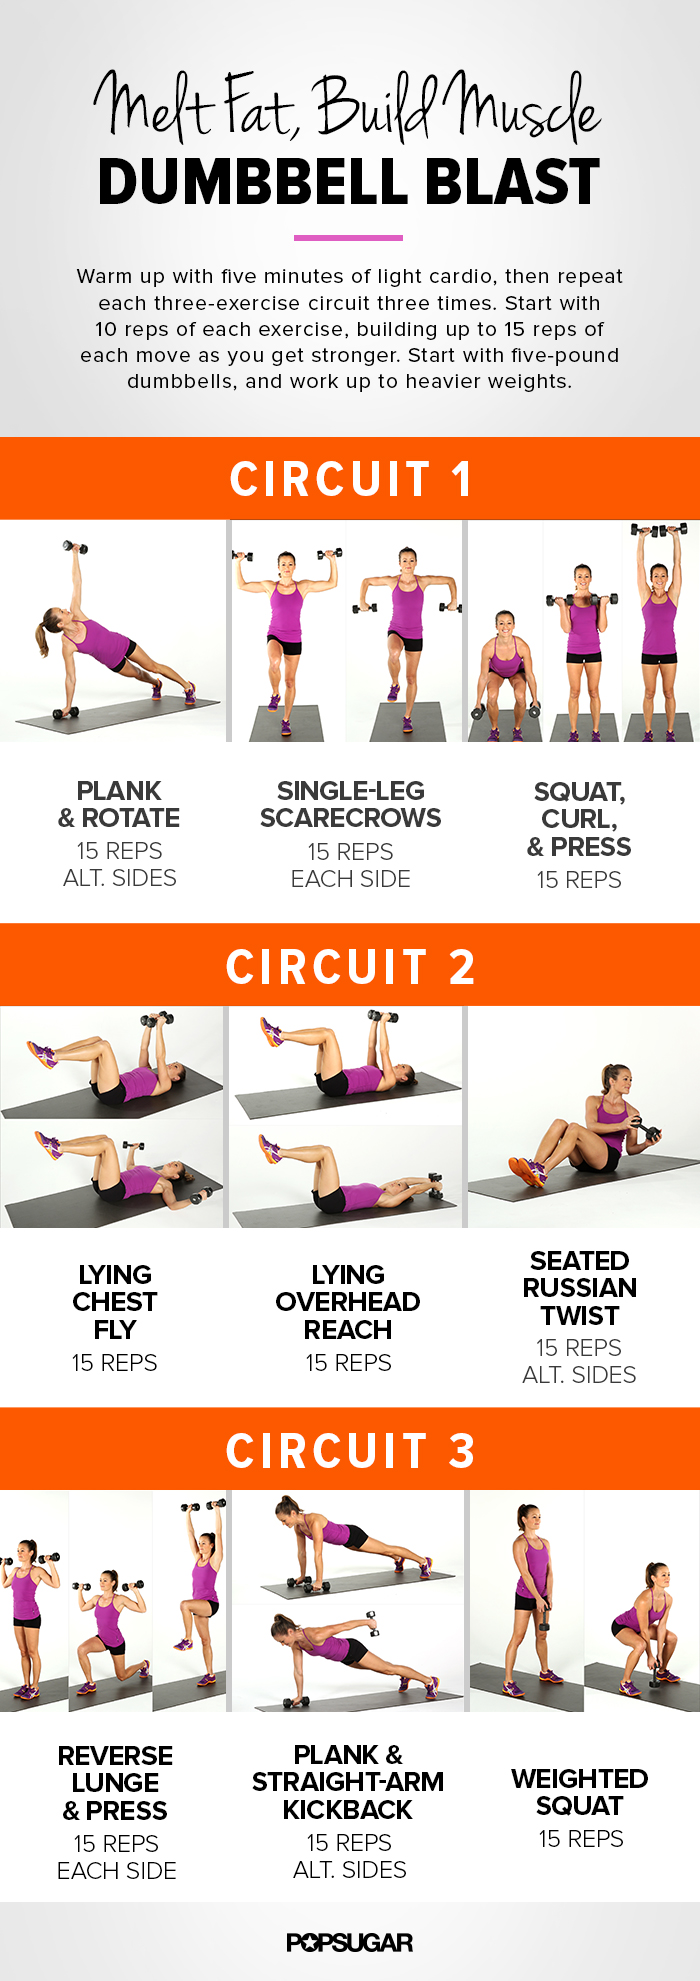 Create A Workout Schedule Dr Michelle Sthamann Nd Circuits Pinterest Different Types Of And